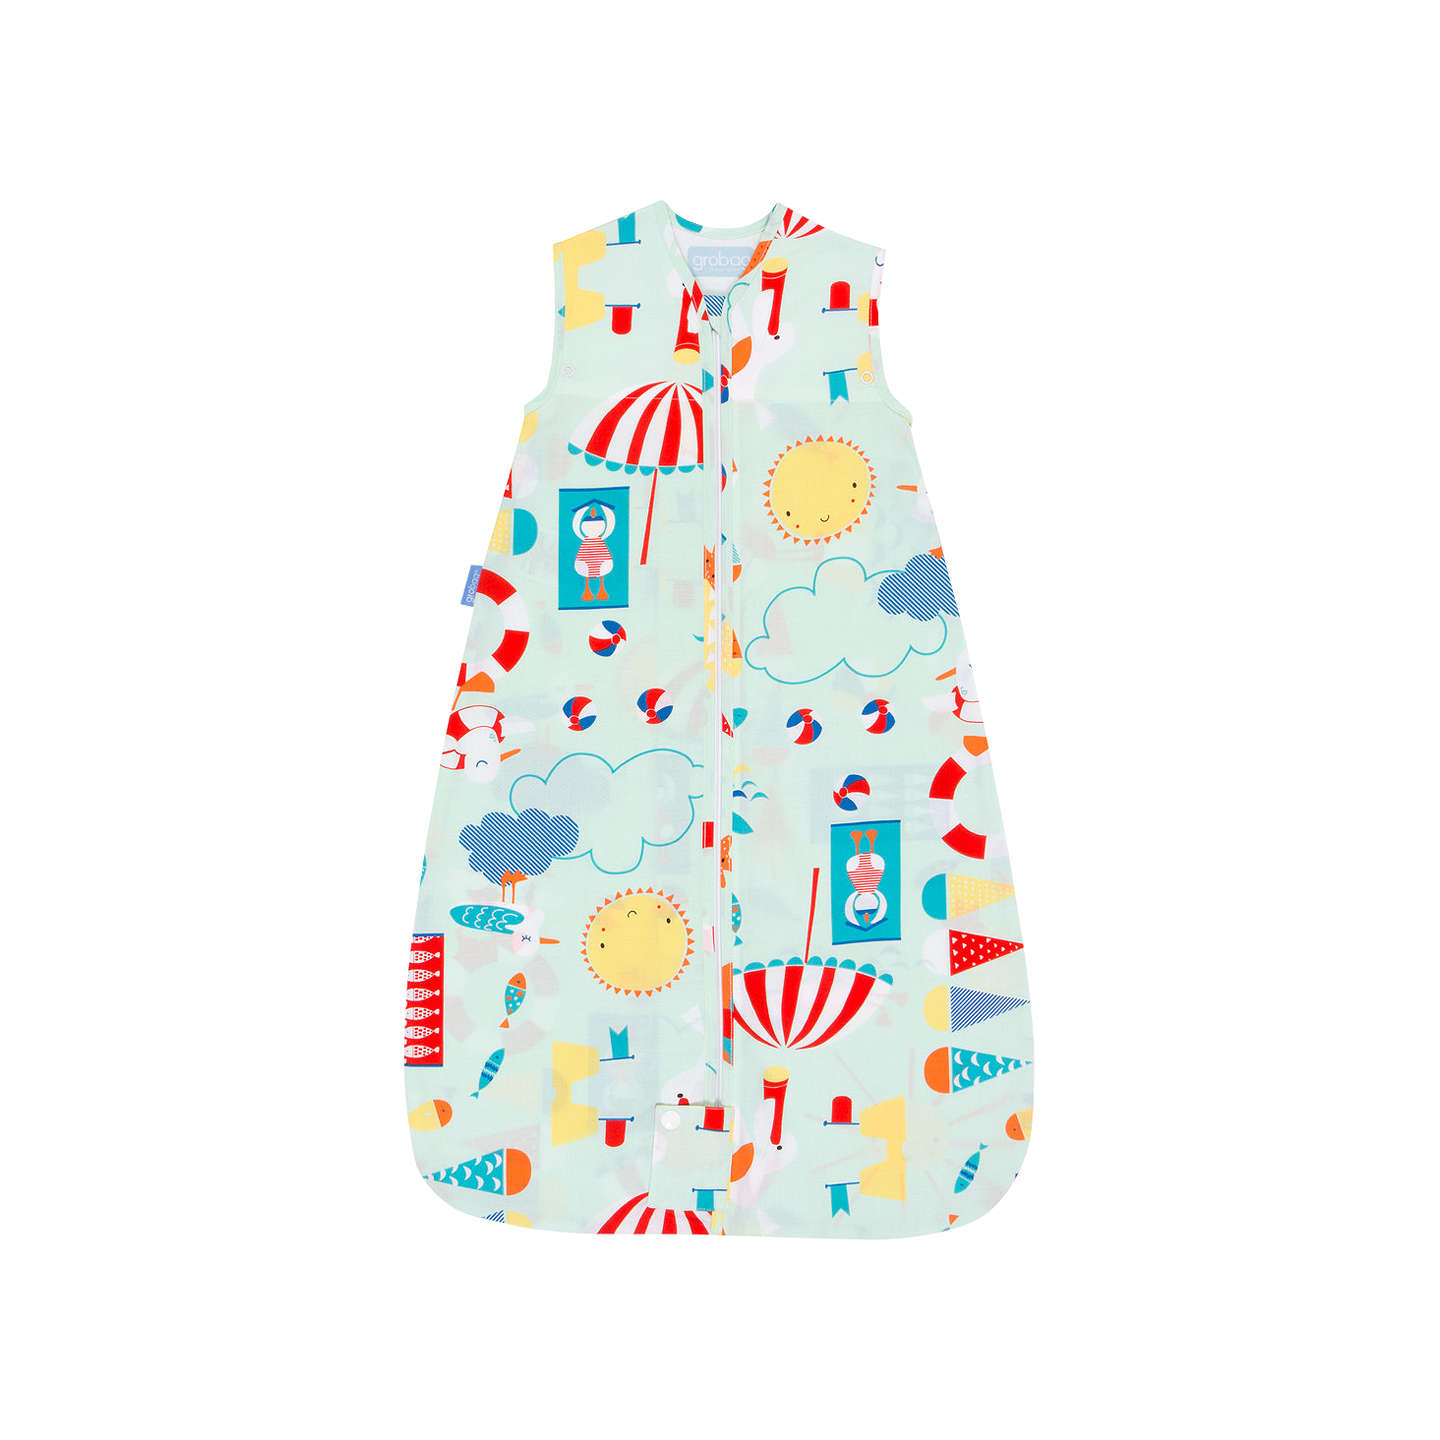 Grobag Beside The Sea Baby Sleep Bag 0 5 Tog Multi at John Lewis